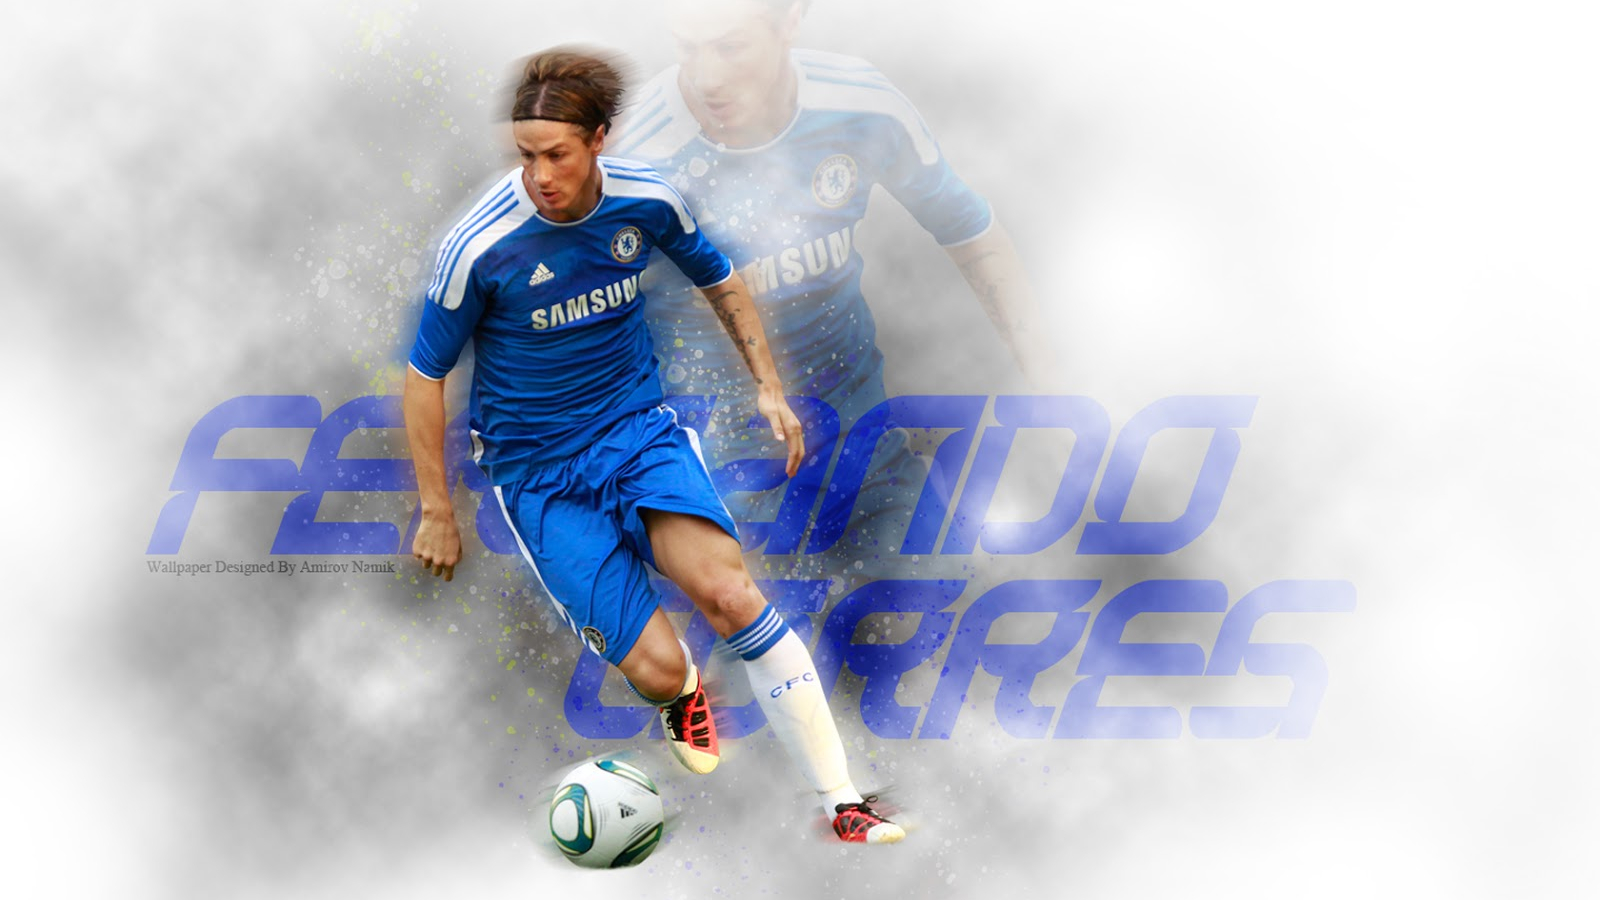 fernando torres wallpaper - HD 1600×900